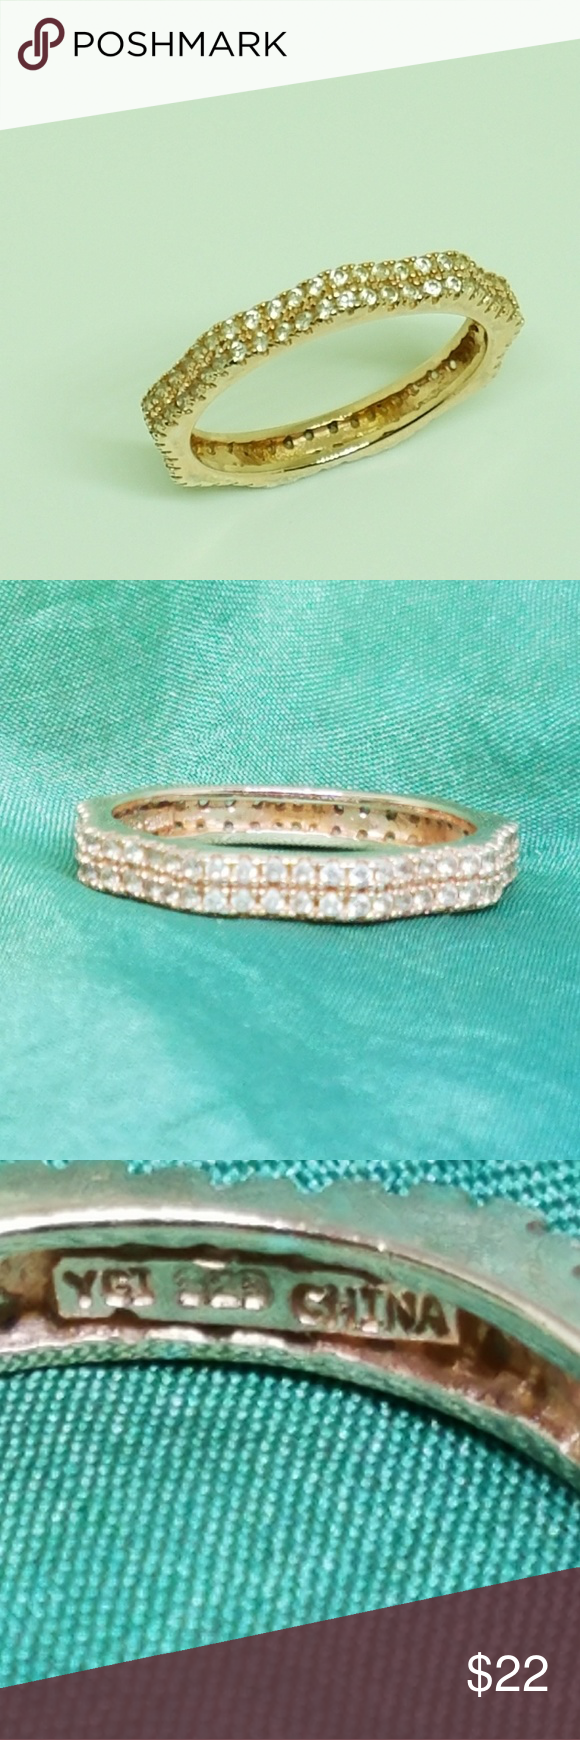 Rose Gold Crystal Ring Sparkling diamond-like Crystal set in rose gold over 925 Sterling silver. This rose gold ring is in very good condition with no missing stones. It would look great stacked or alone. Size 8 Jewelry Rings